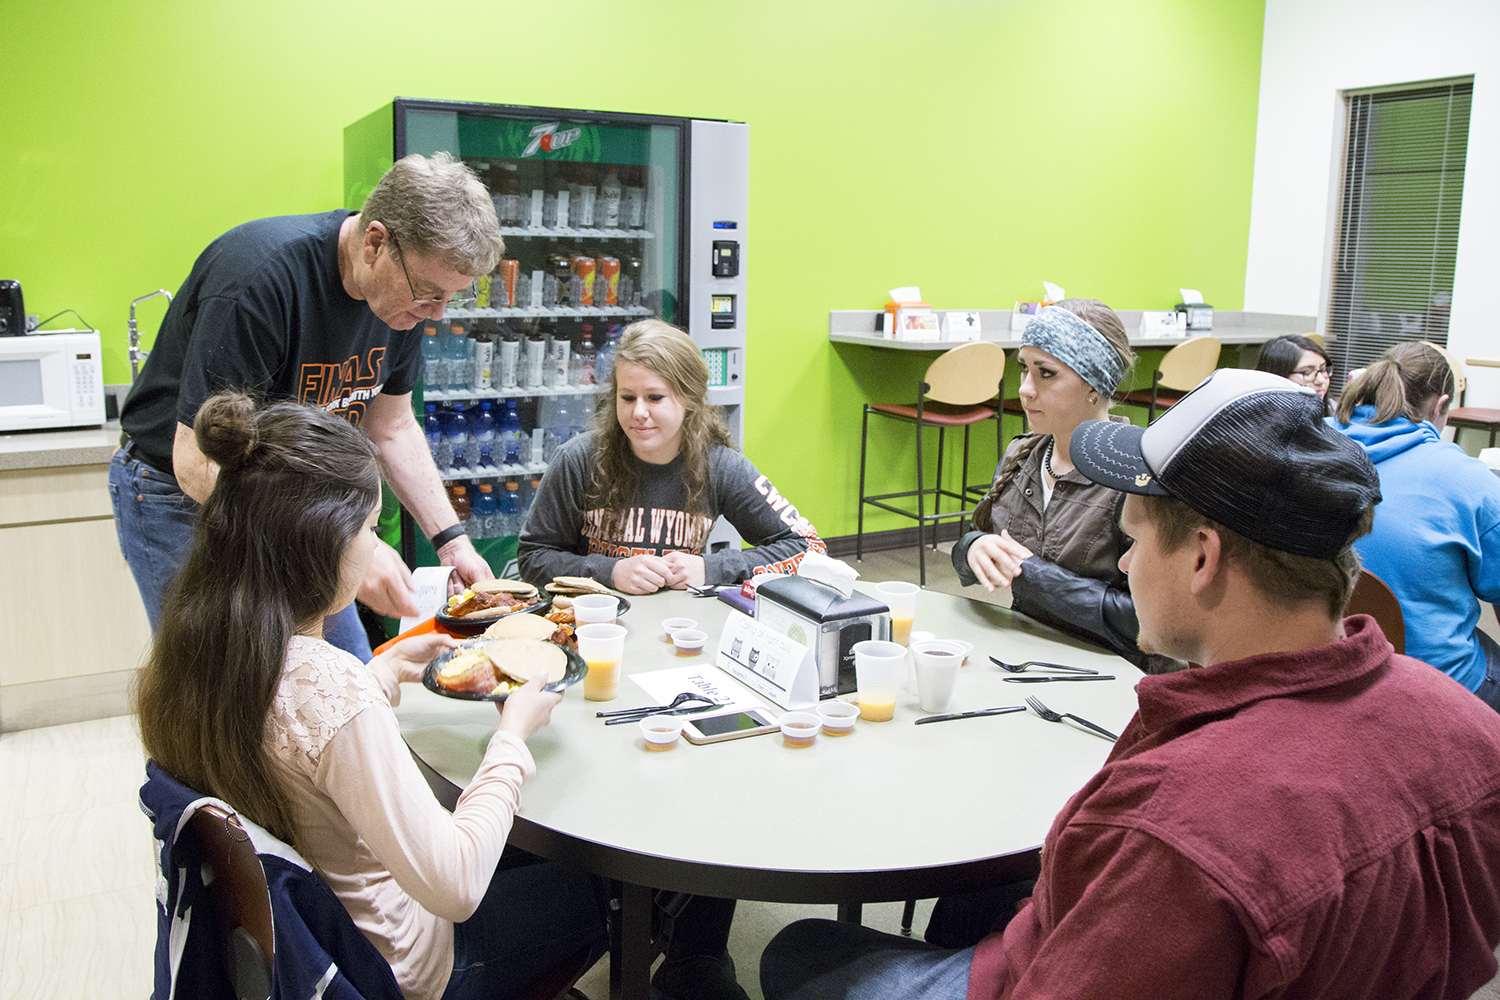 Steve McAllister serves plates of food to students